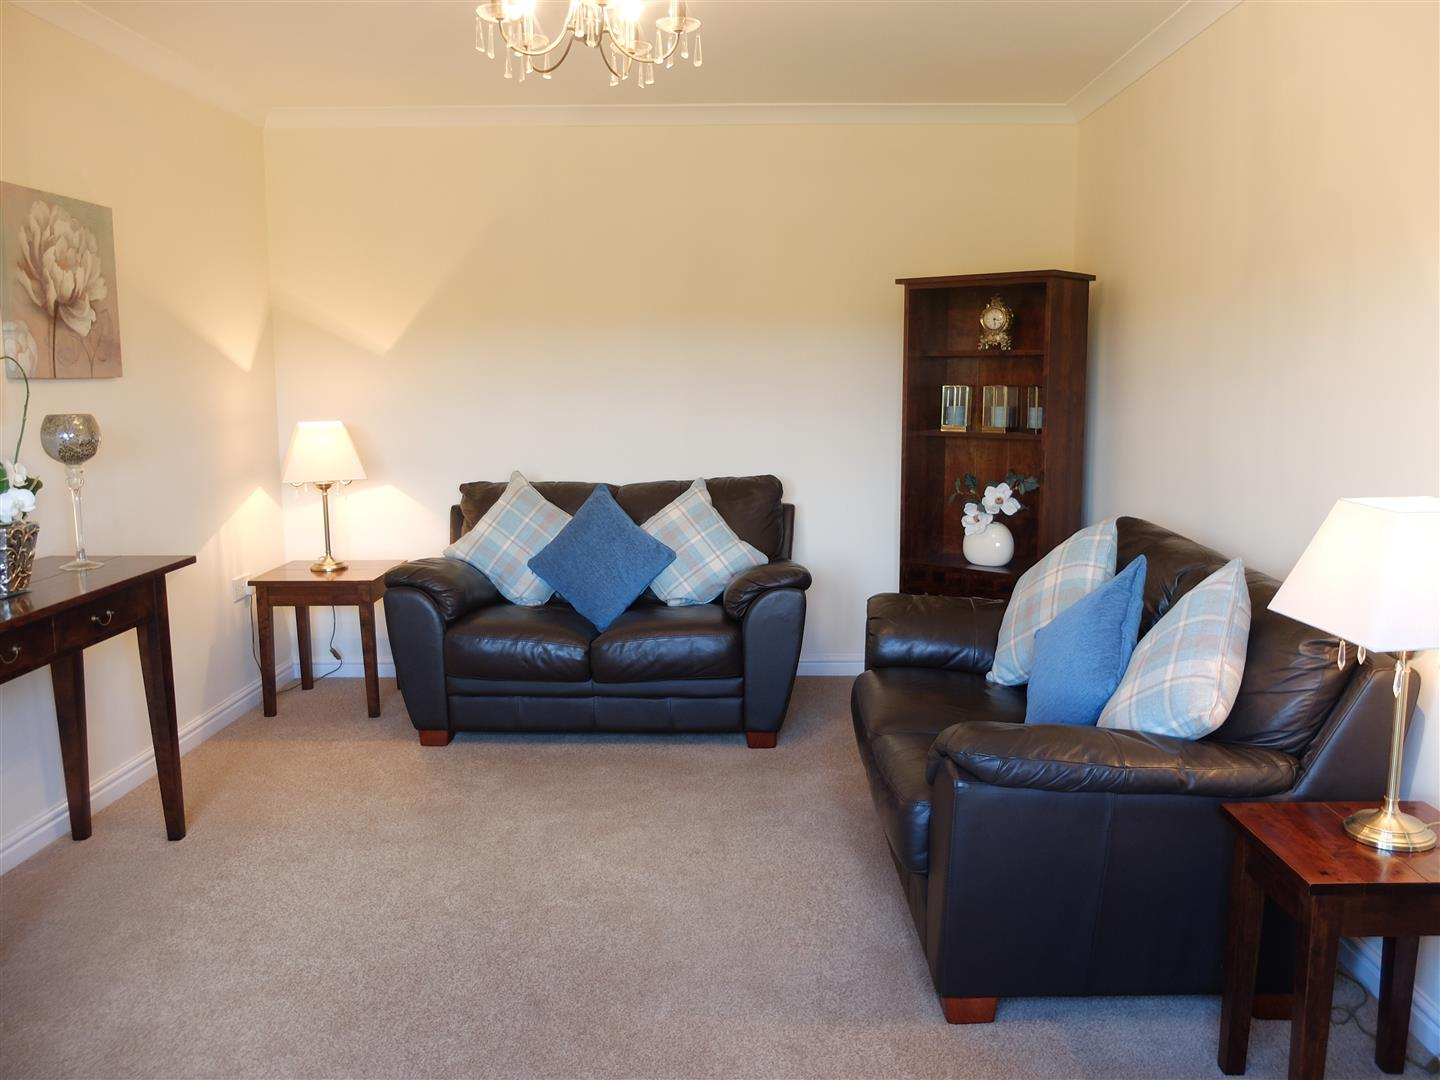 5 Bedrooms House - Detached For Sale 4 Admiral Way Carlisle